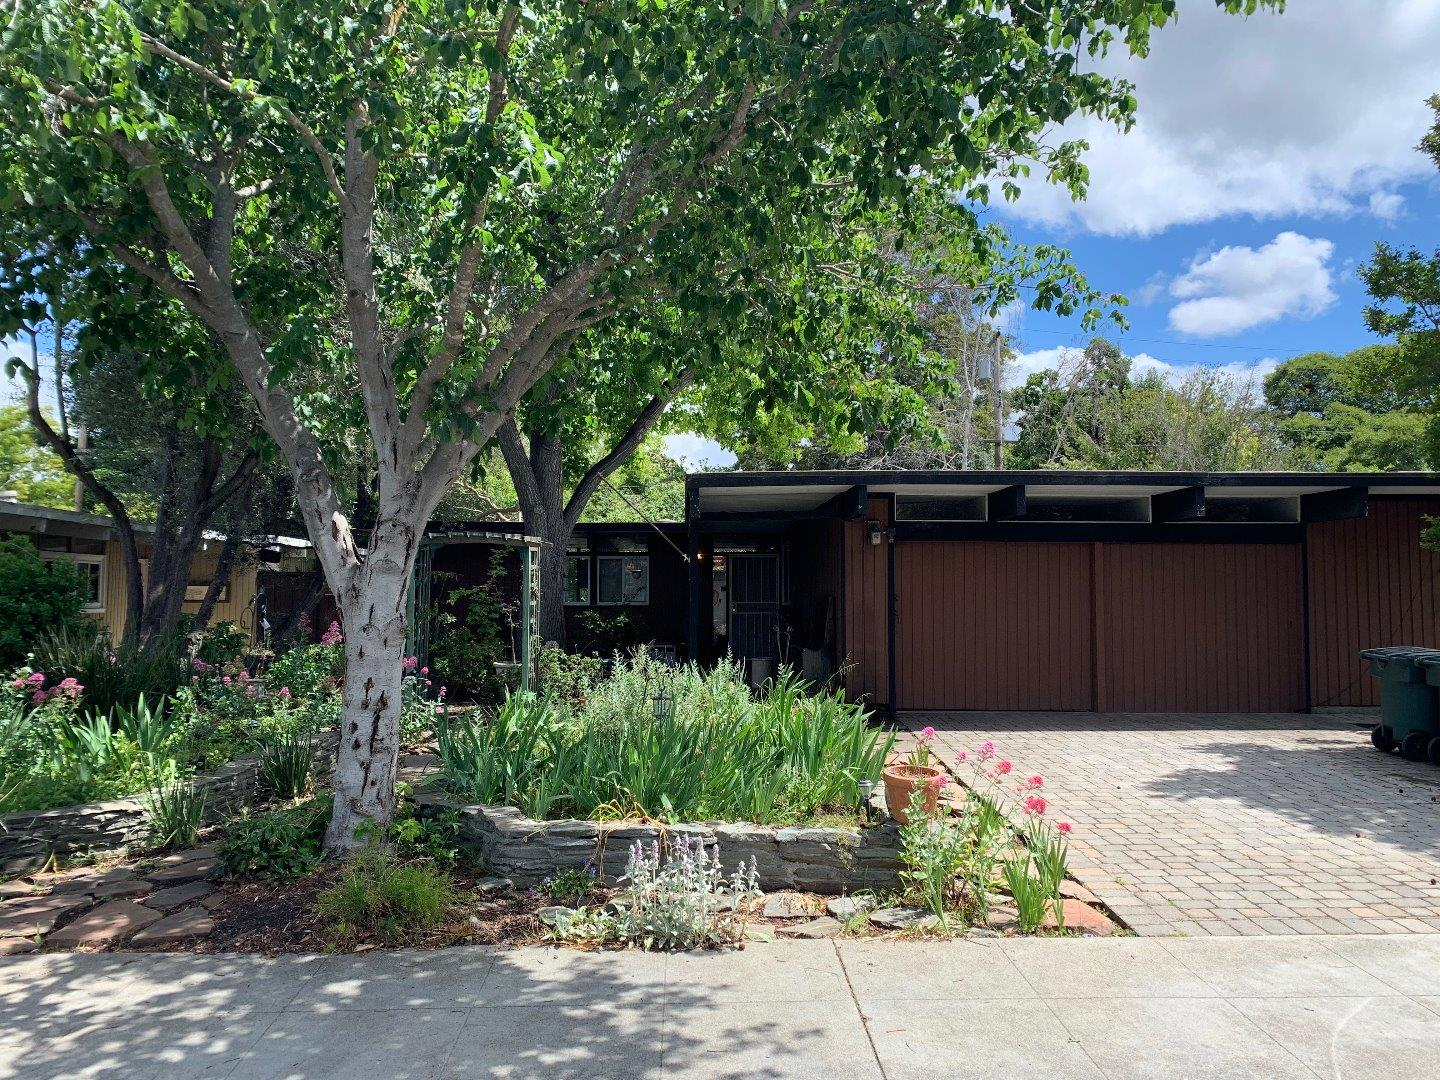 722 SEMINOLE WAY, PALO ALTO, CA 94303